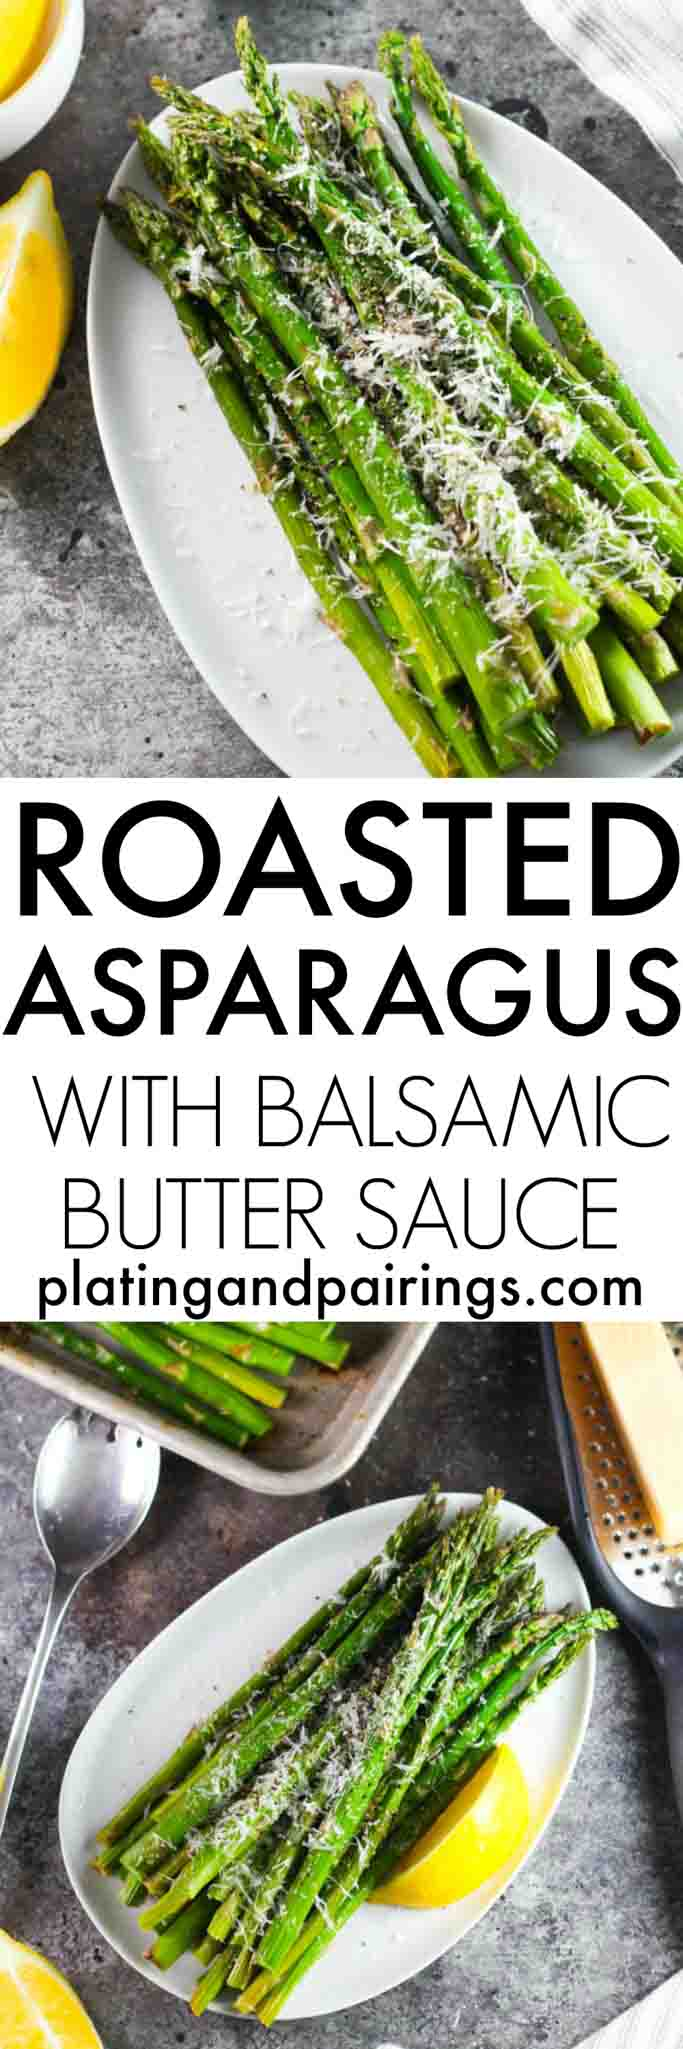 This Roasted Asparagus with Balsamic Butter Sauce is a quick, simple, hands-off side dish that's packed with delicious umami flavor | platingsandpairings.com